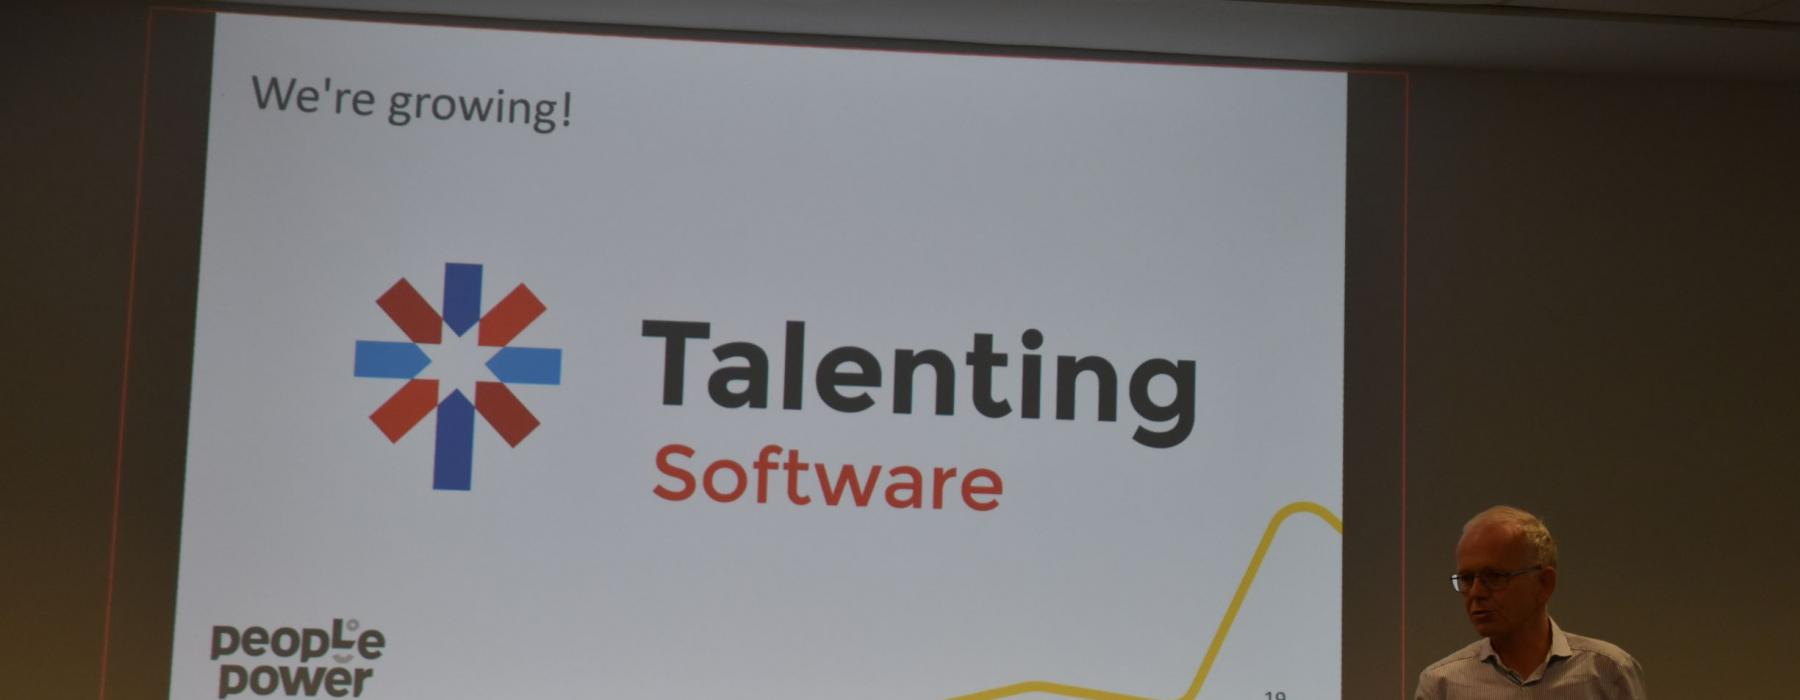 Talenting Software